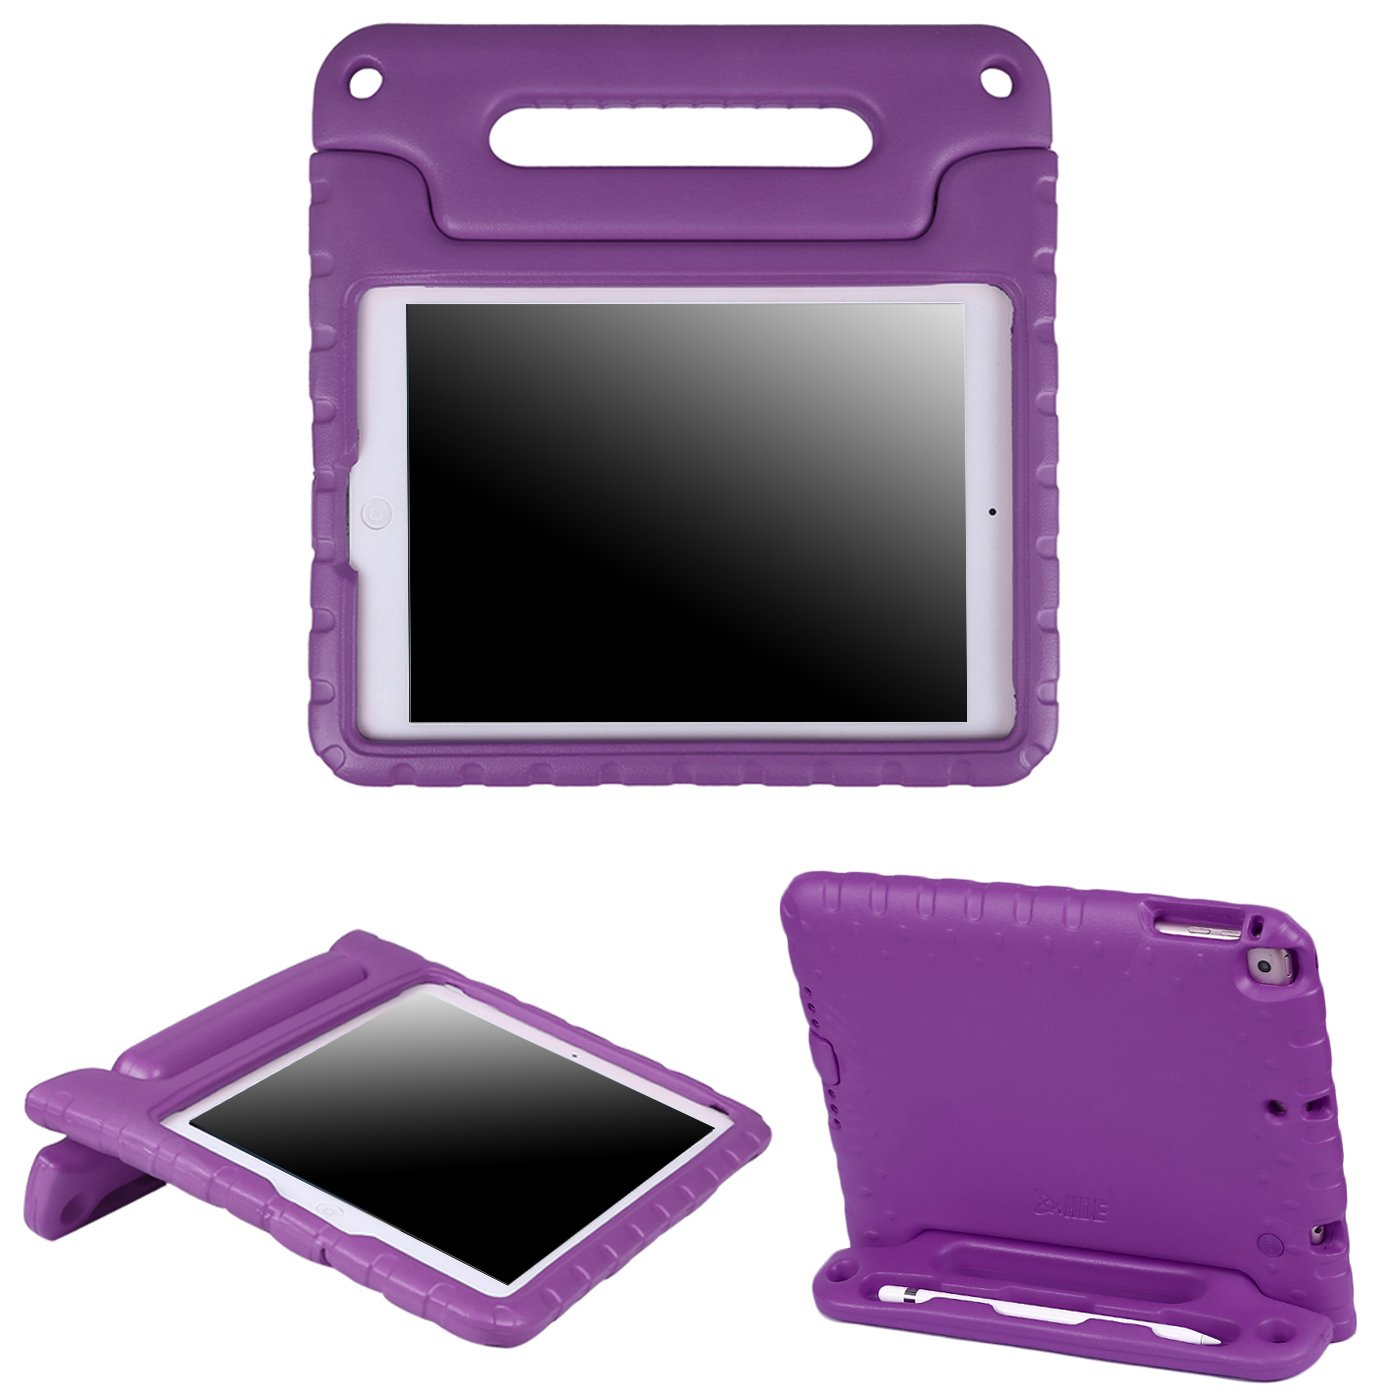 HDE iPad 6th Generation Case for Kids – iPad 9.7 inch 5th and 6th Generation Cases for Kids Shock Proof Protective Light Weight Cover with Handle Stand for Apple iPad 9.7 with Pencil Holder - Purple